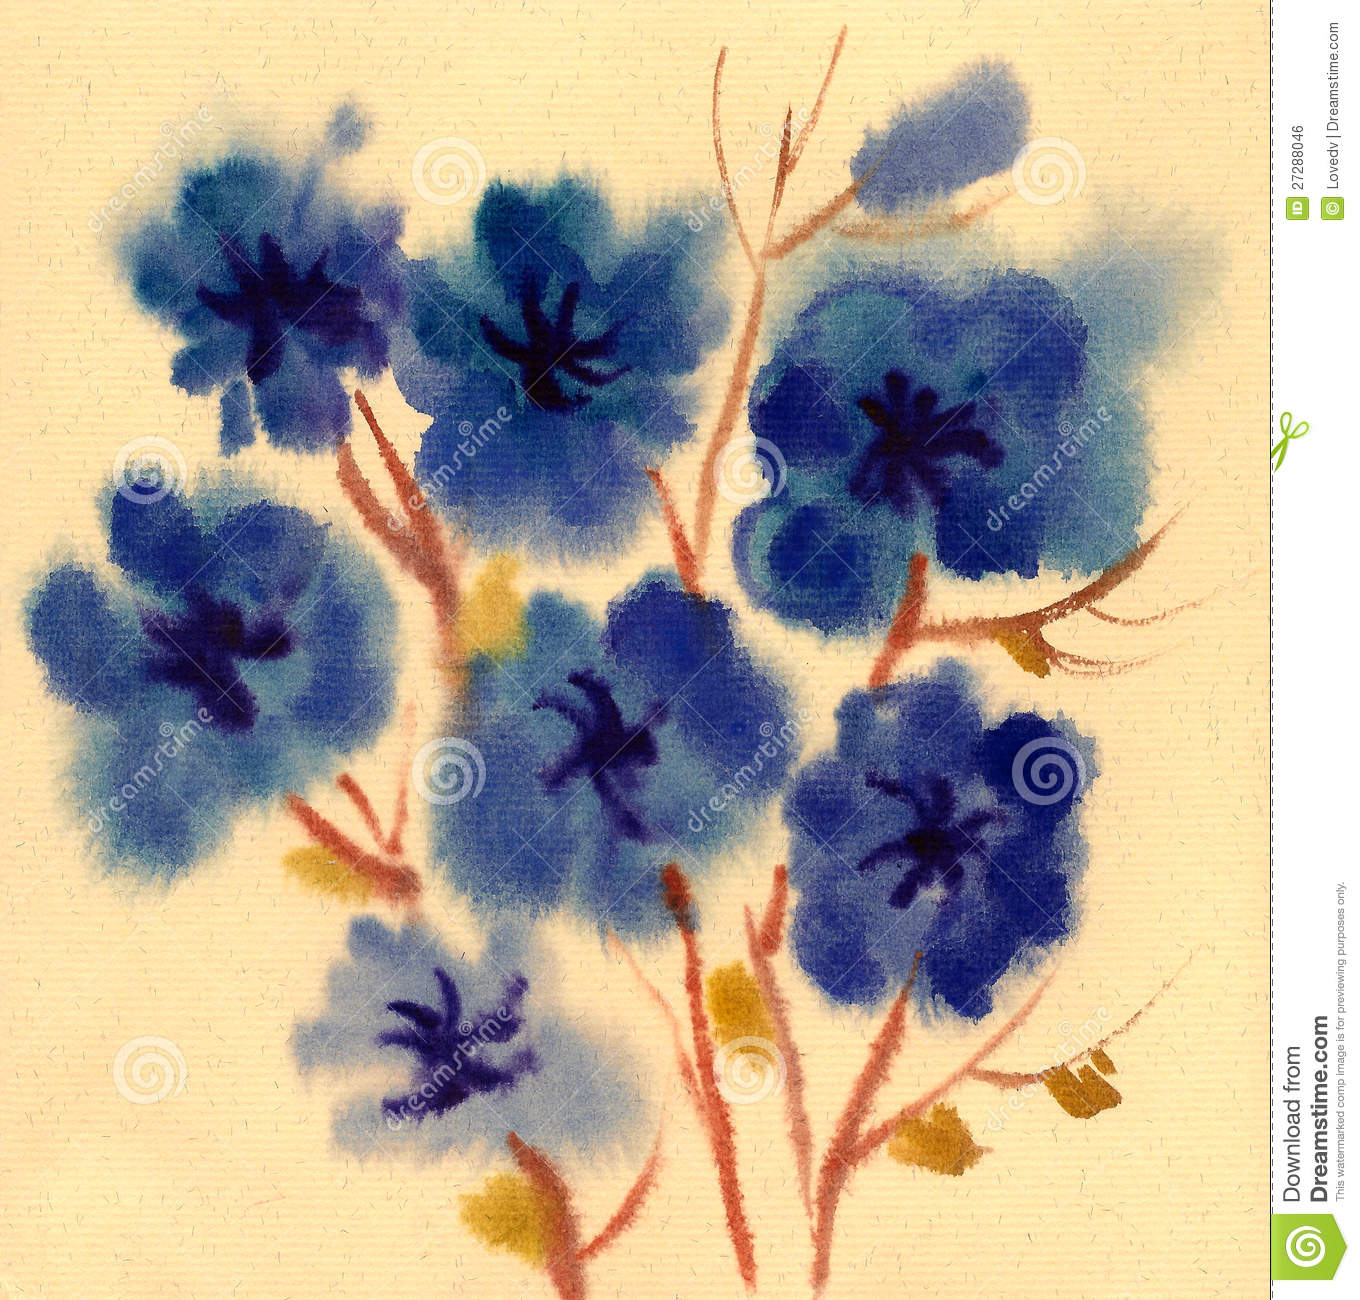 blaue blumen gemalt im aquarell stock abbildung illustration von nave blau 27288046. Black Bedroom Furniture Sets. Home Design Ideas